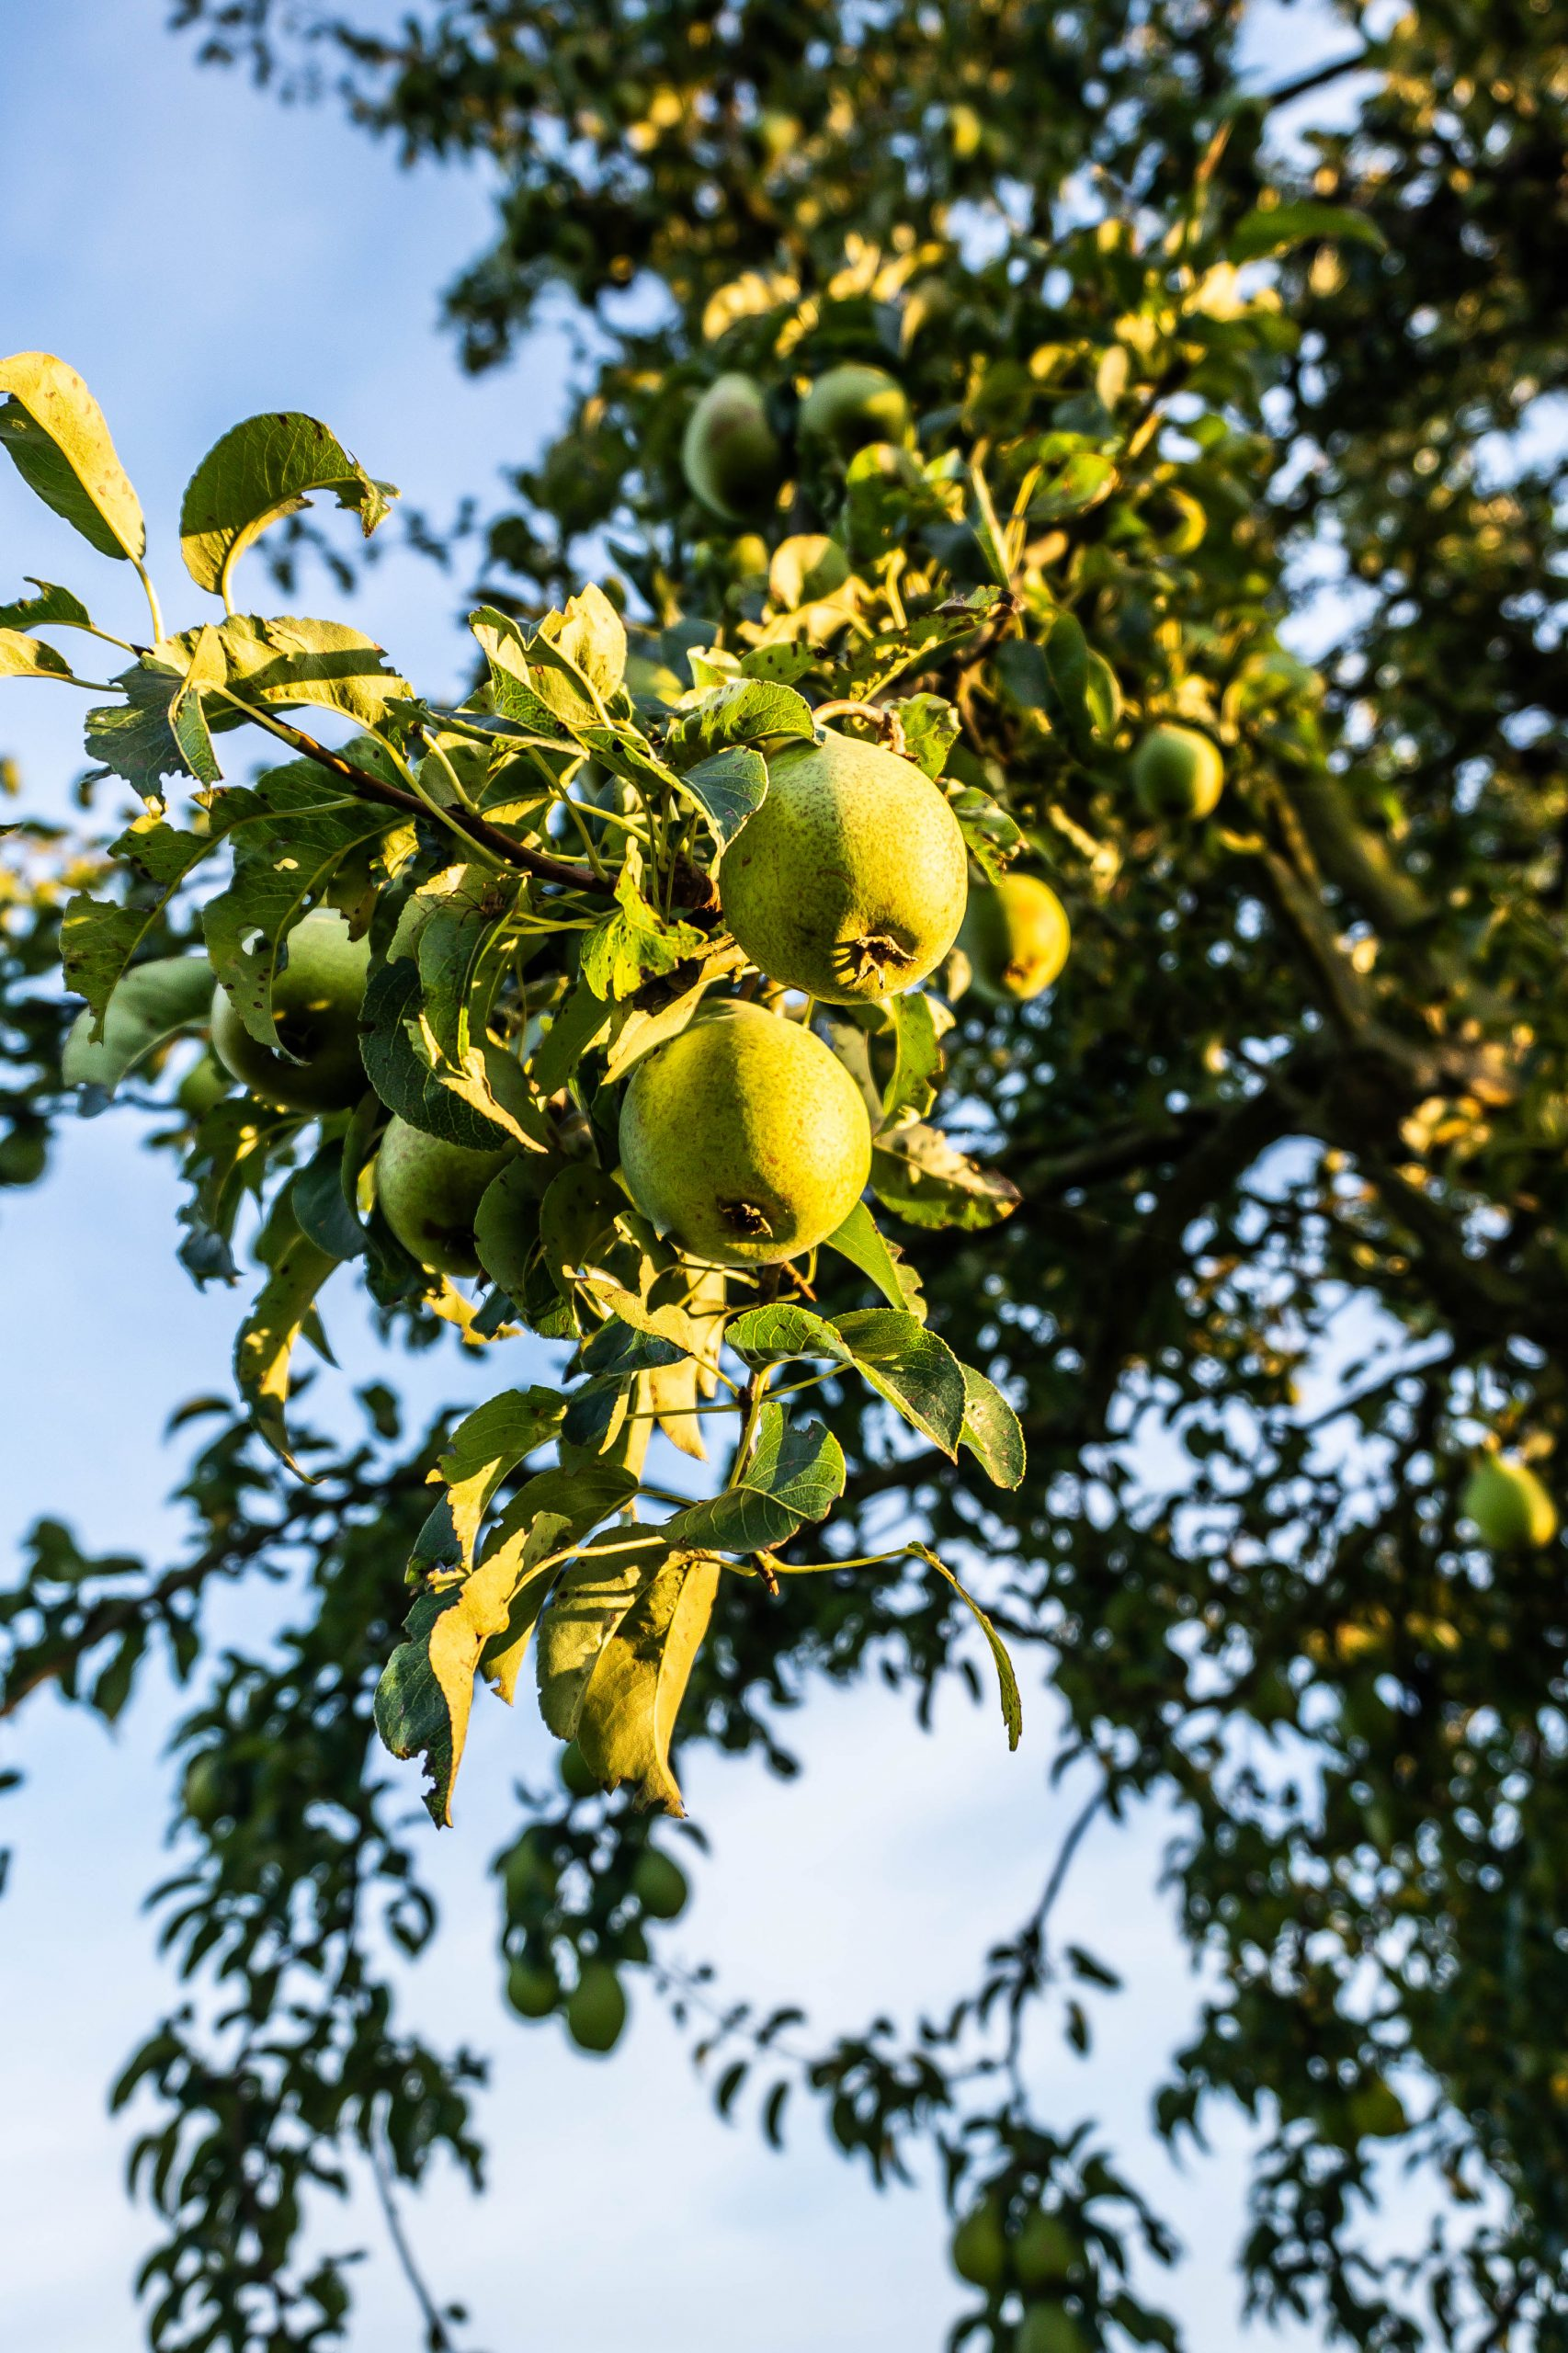 Pears photographed on a pear tree against a blue sky